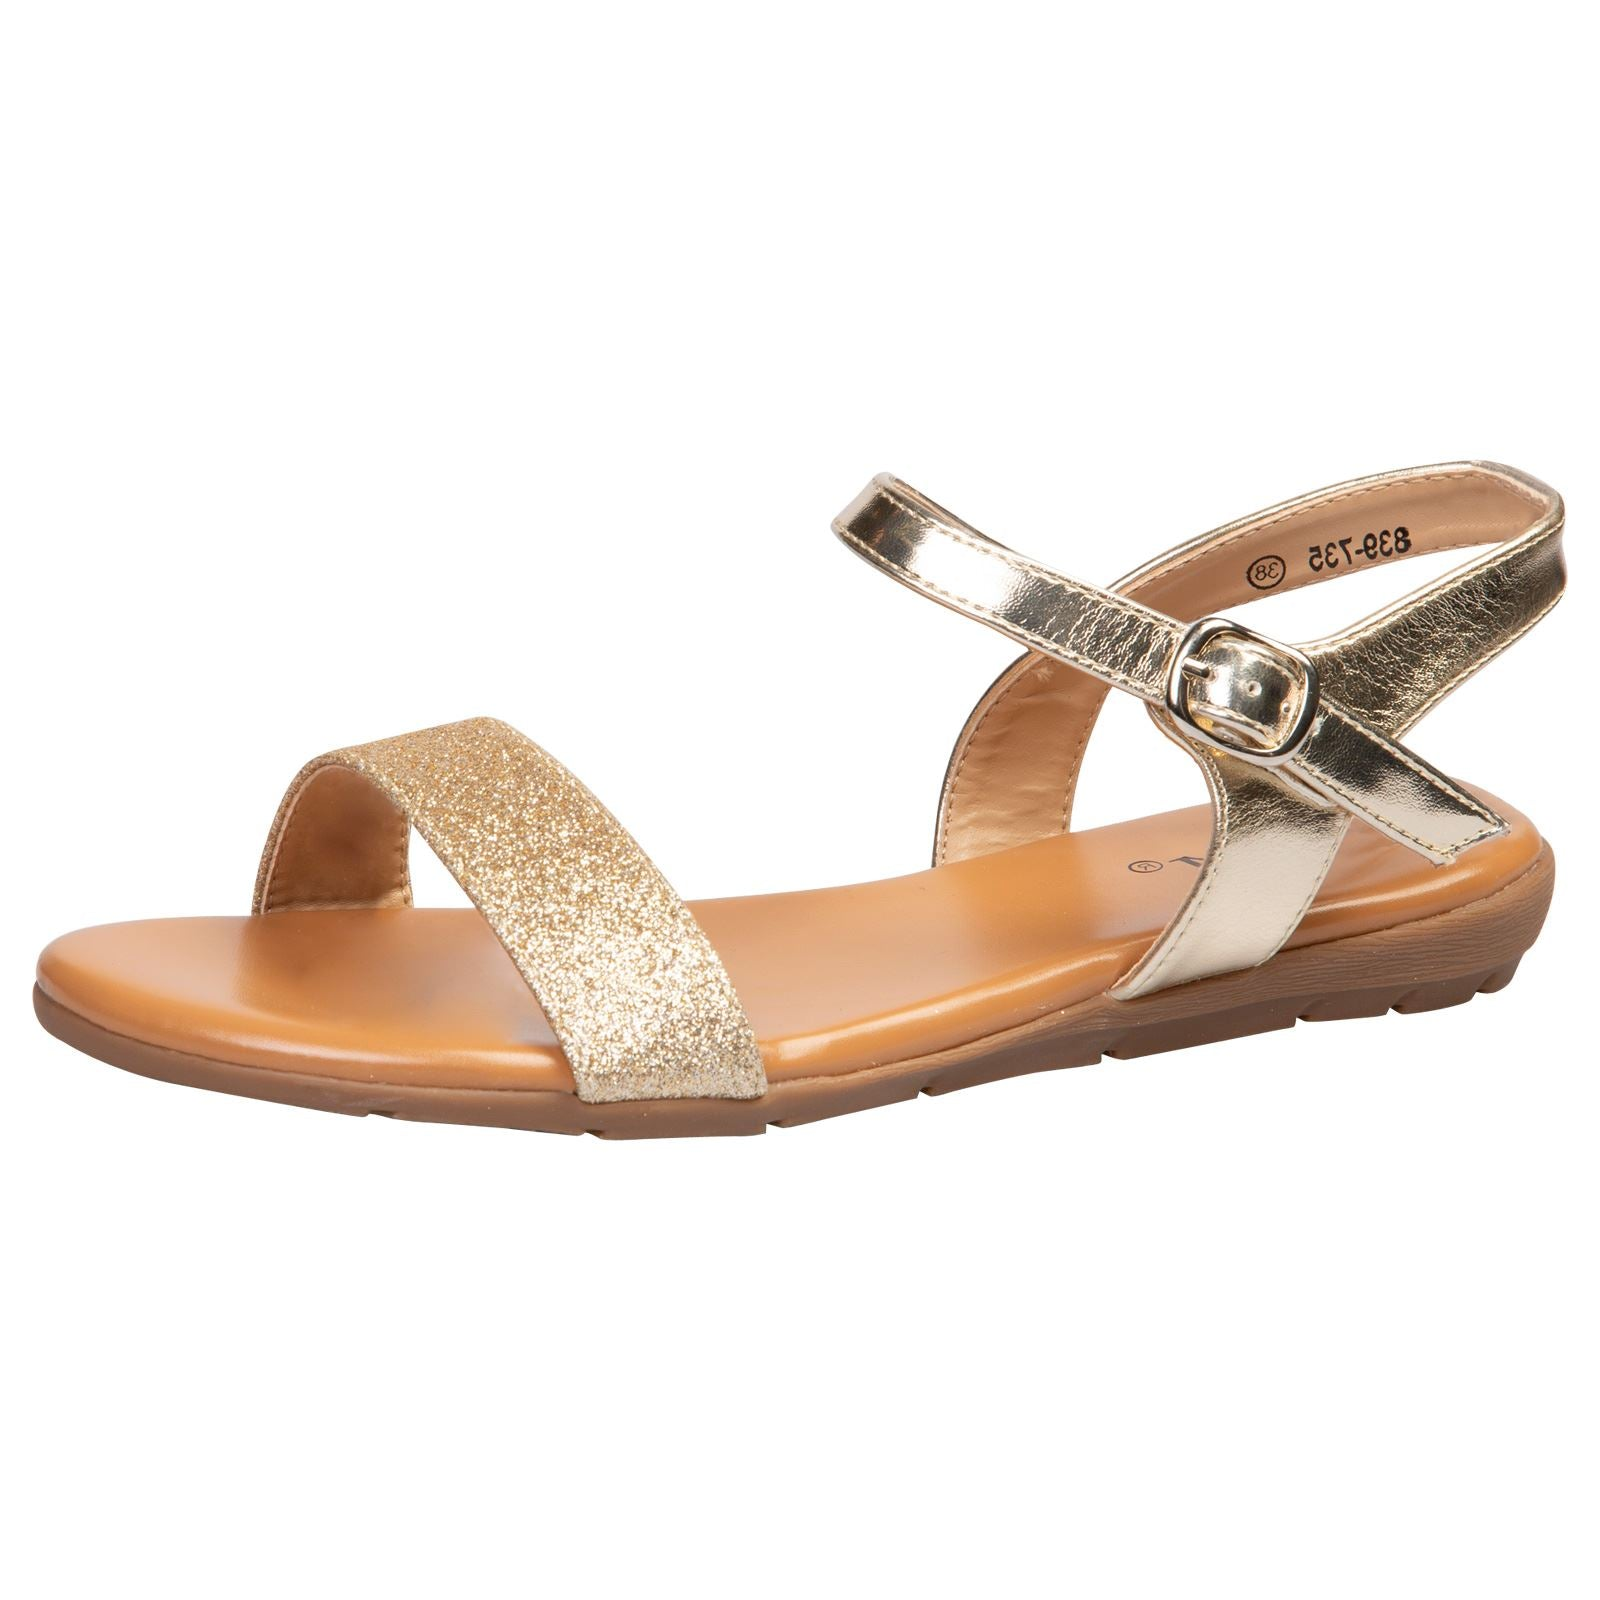 Lucy Flat Glitter Sandals in Gold - Feet First Fashion